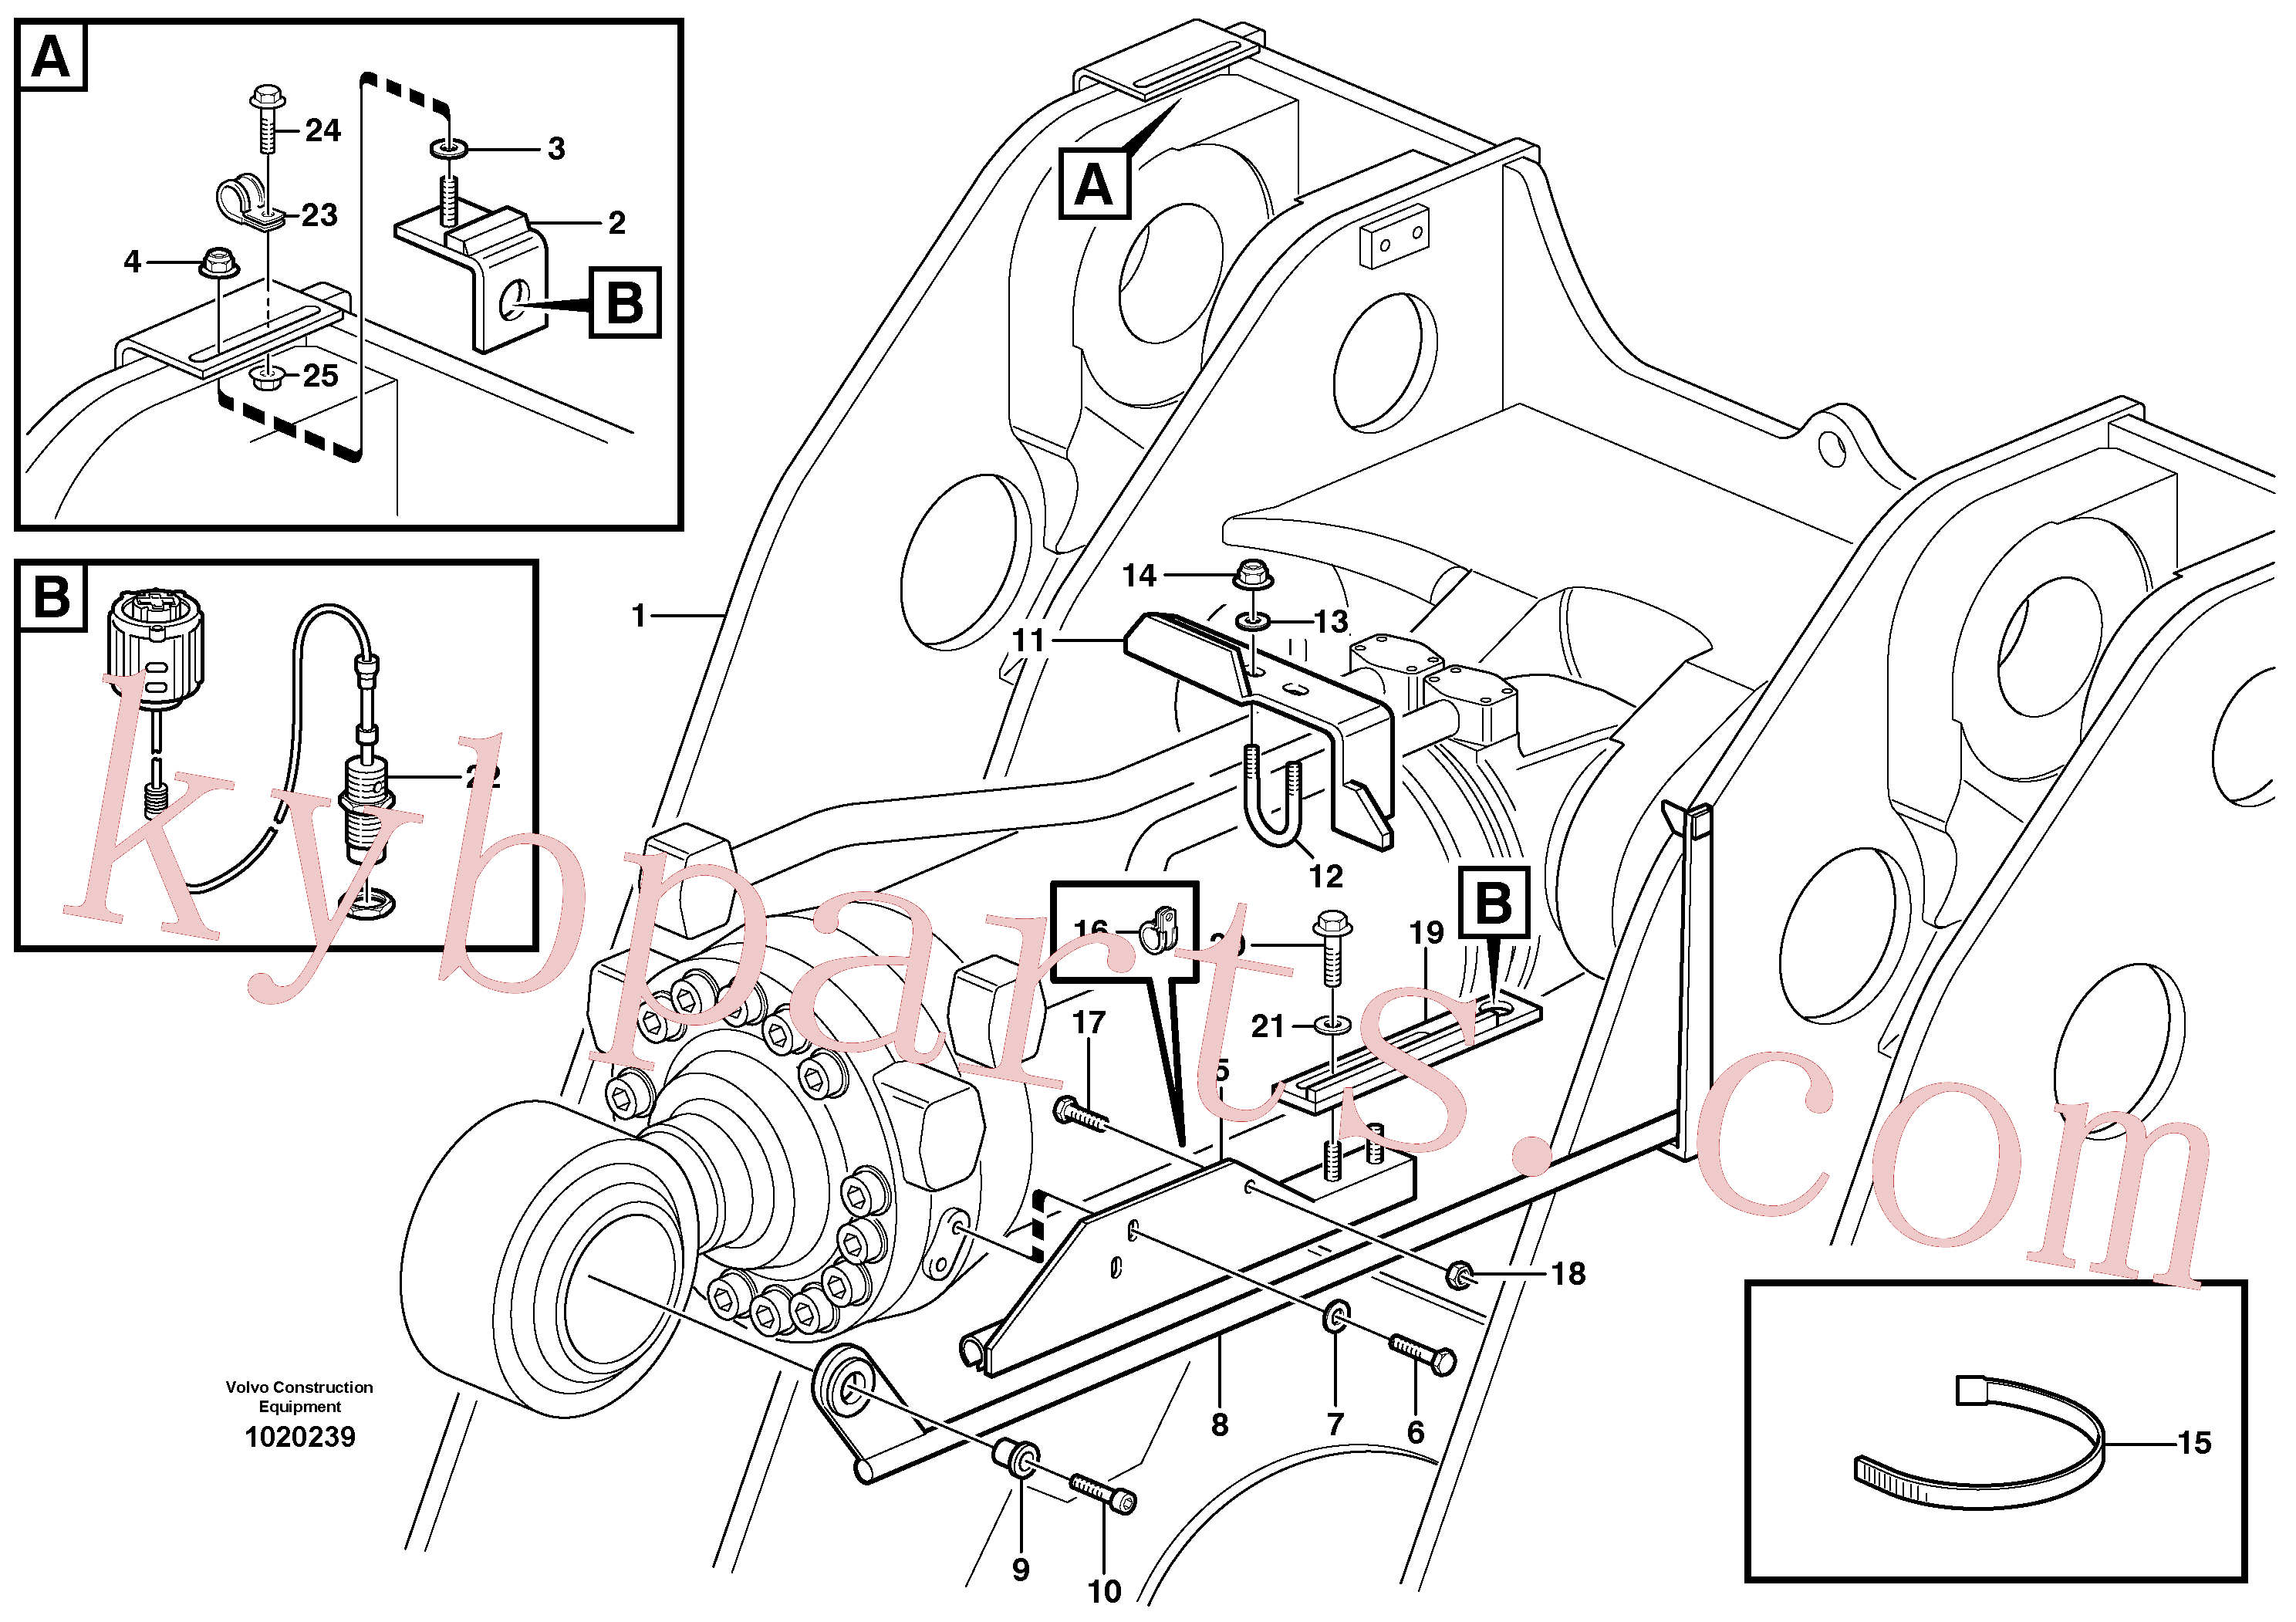 VOE984087 for Volvo Bucket positioner and boom kickout(1020239 assembly)